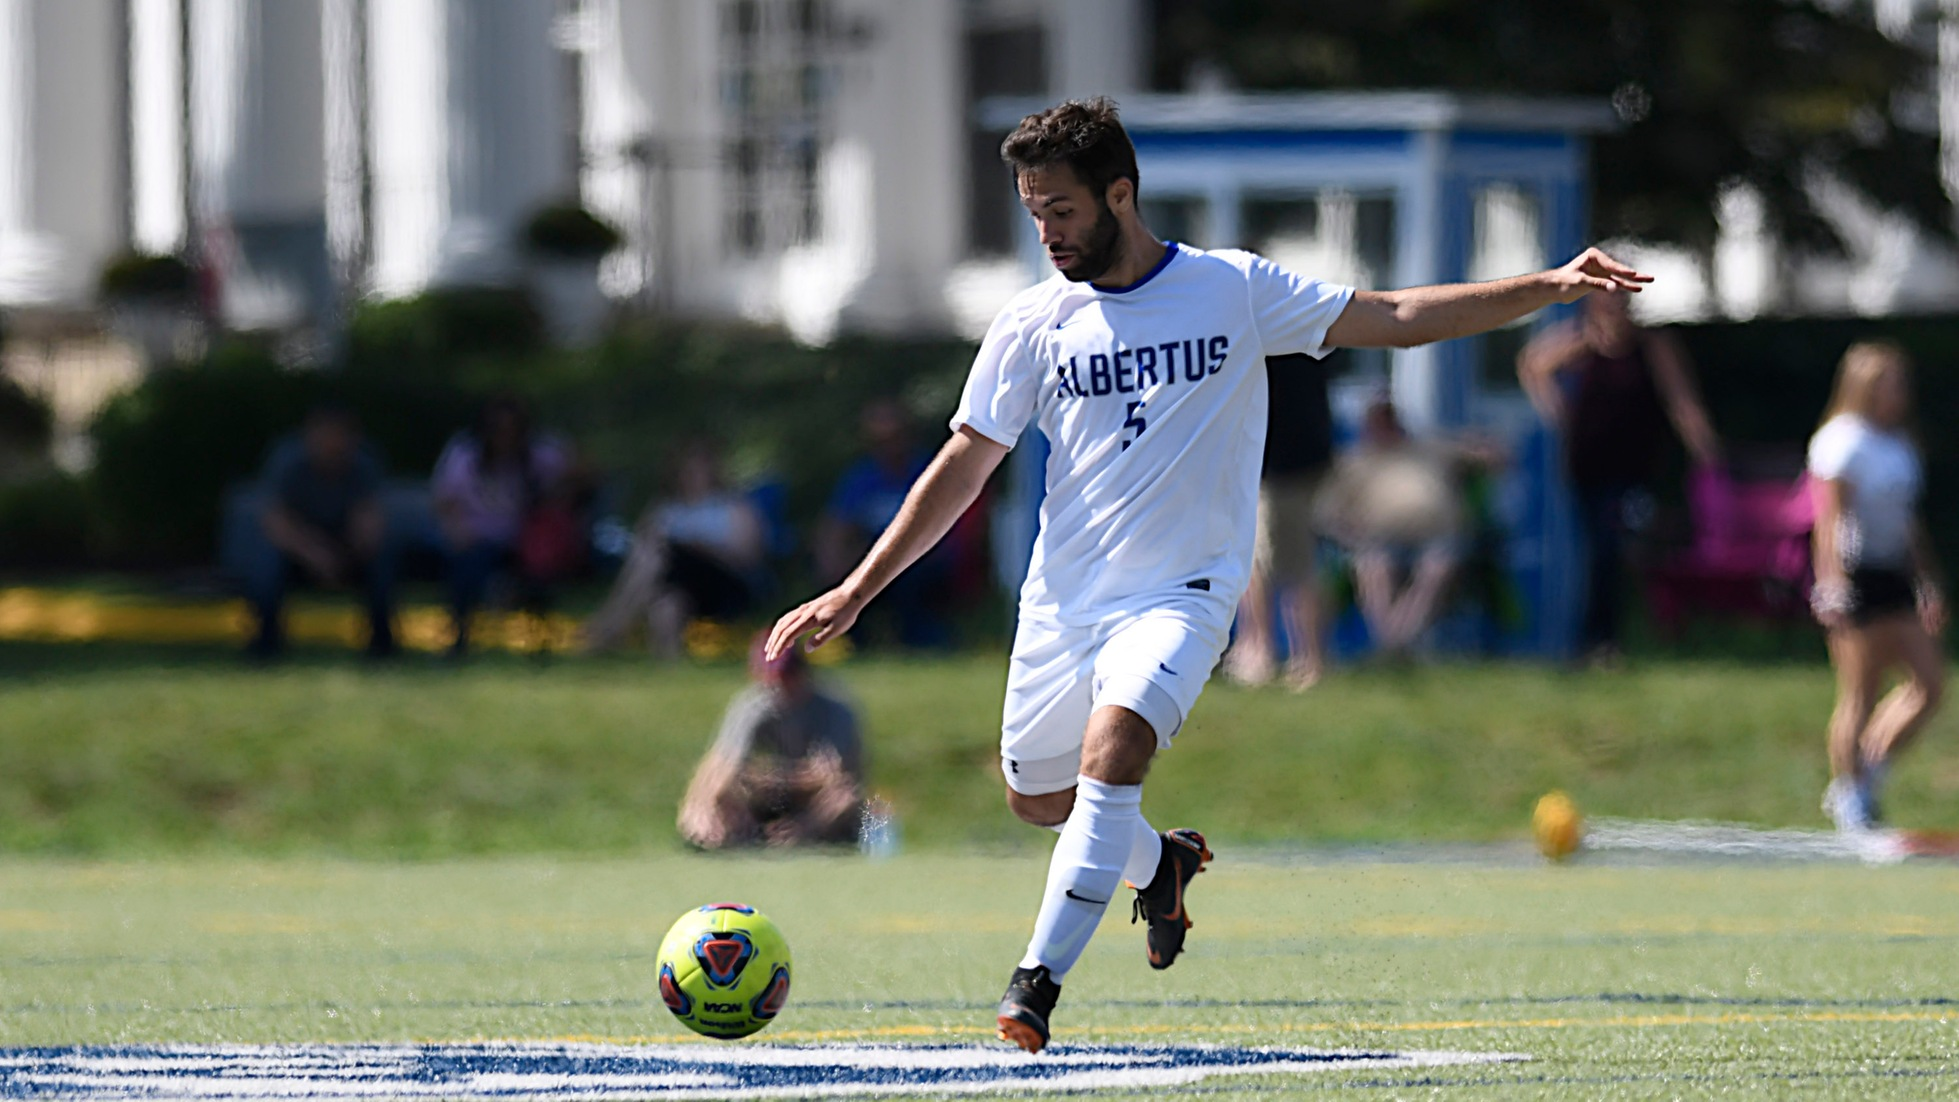 Men's Soccer Draws 2-2 Tie with Regis (Mass.) in Conference Play